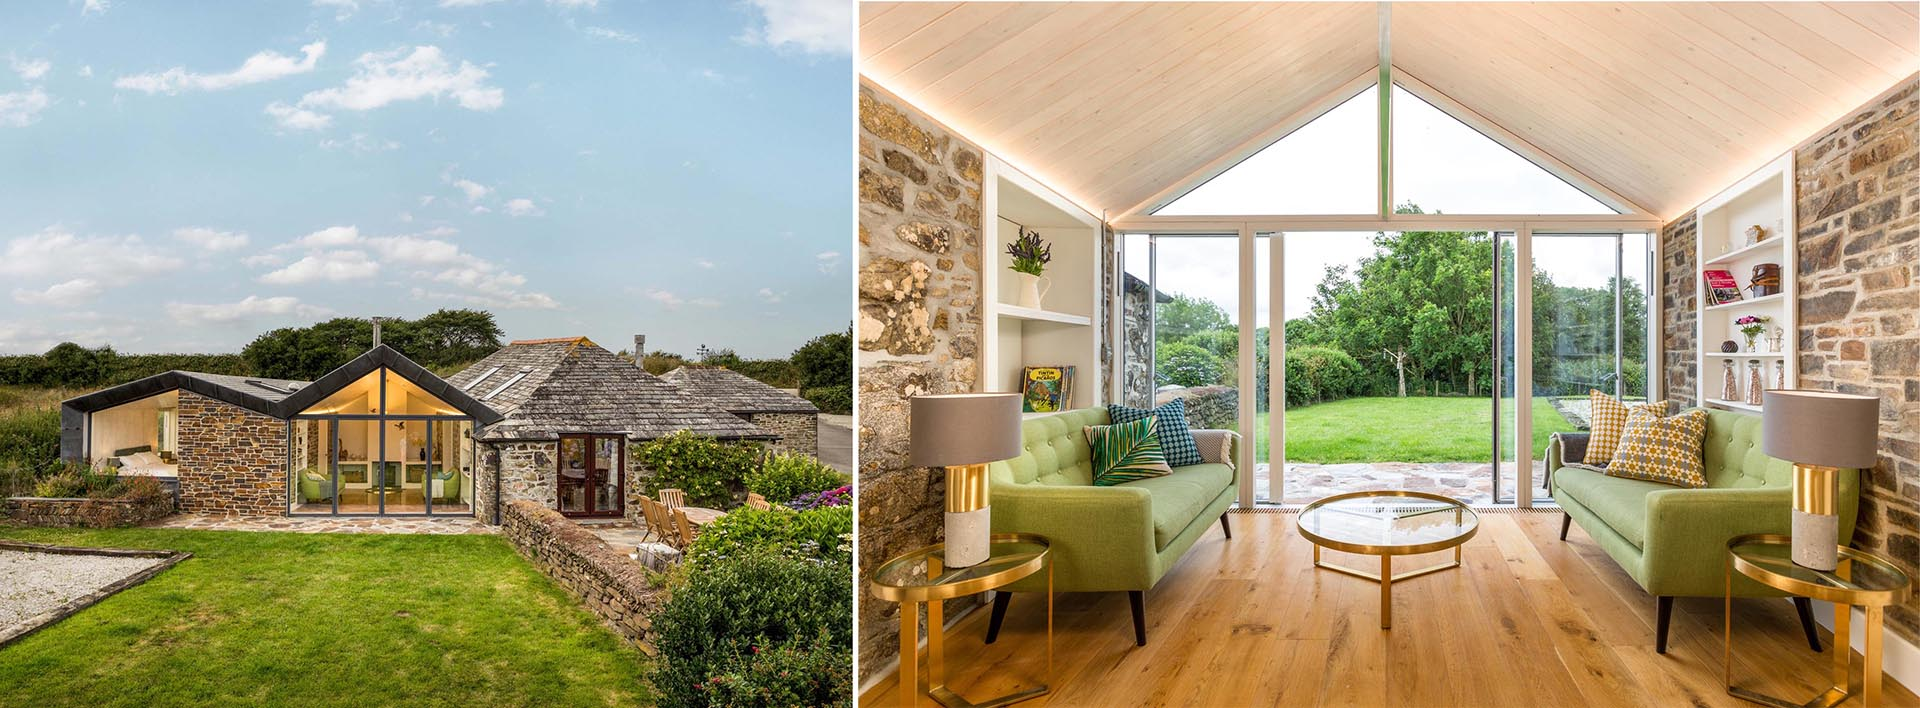 Key to the design of this extension is the way the new section of the home integrates with the old, and respects the original building materials.